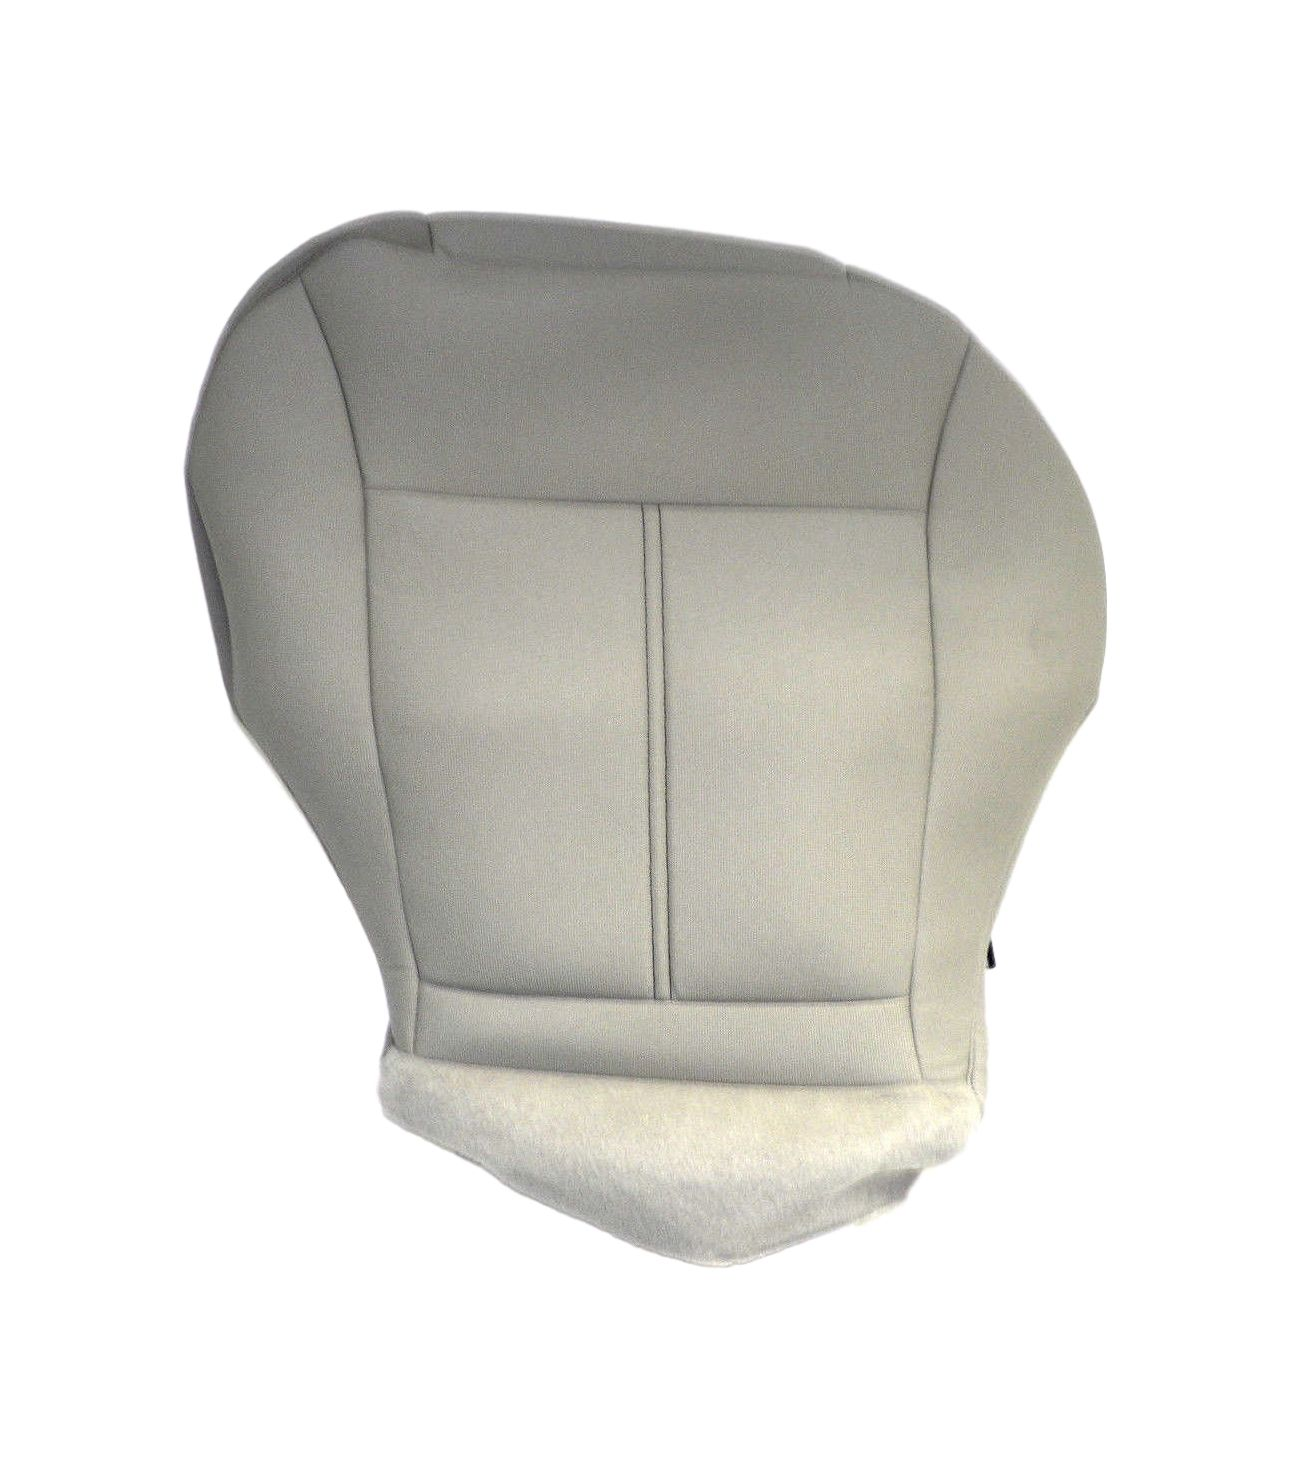 hight resolution of genuine oem ford ct4z 7862900 aa seat cover cushion front right passenger side walmart com